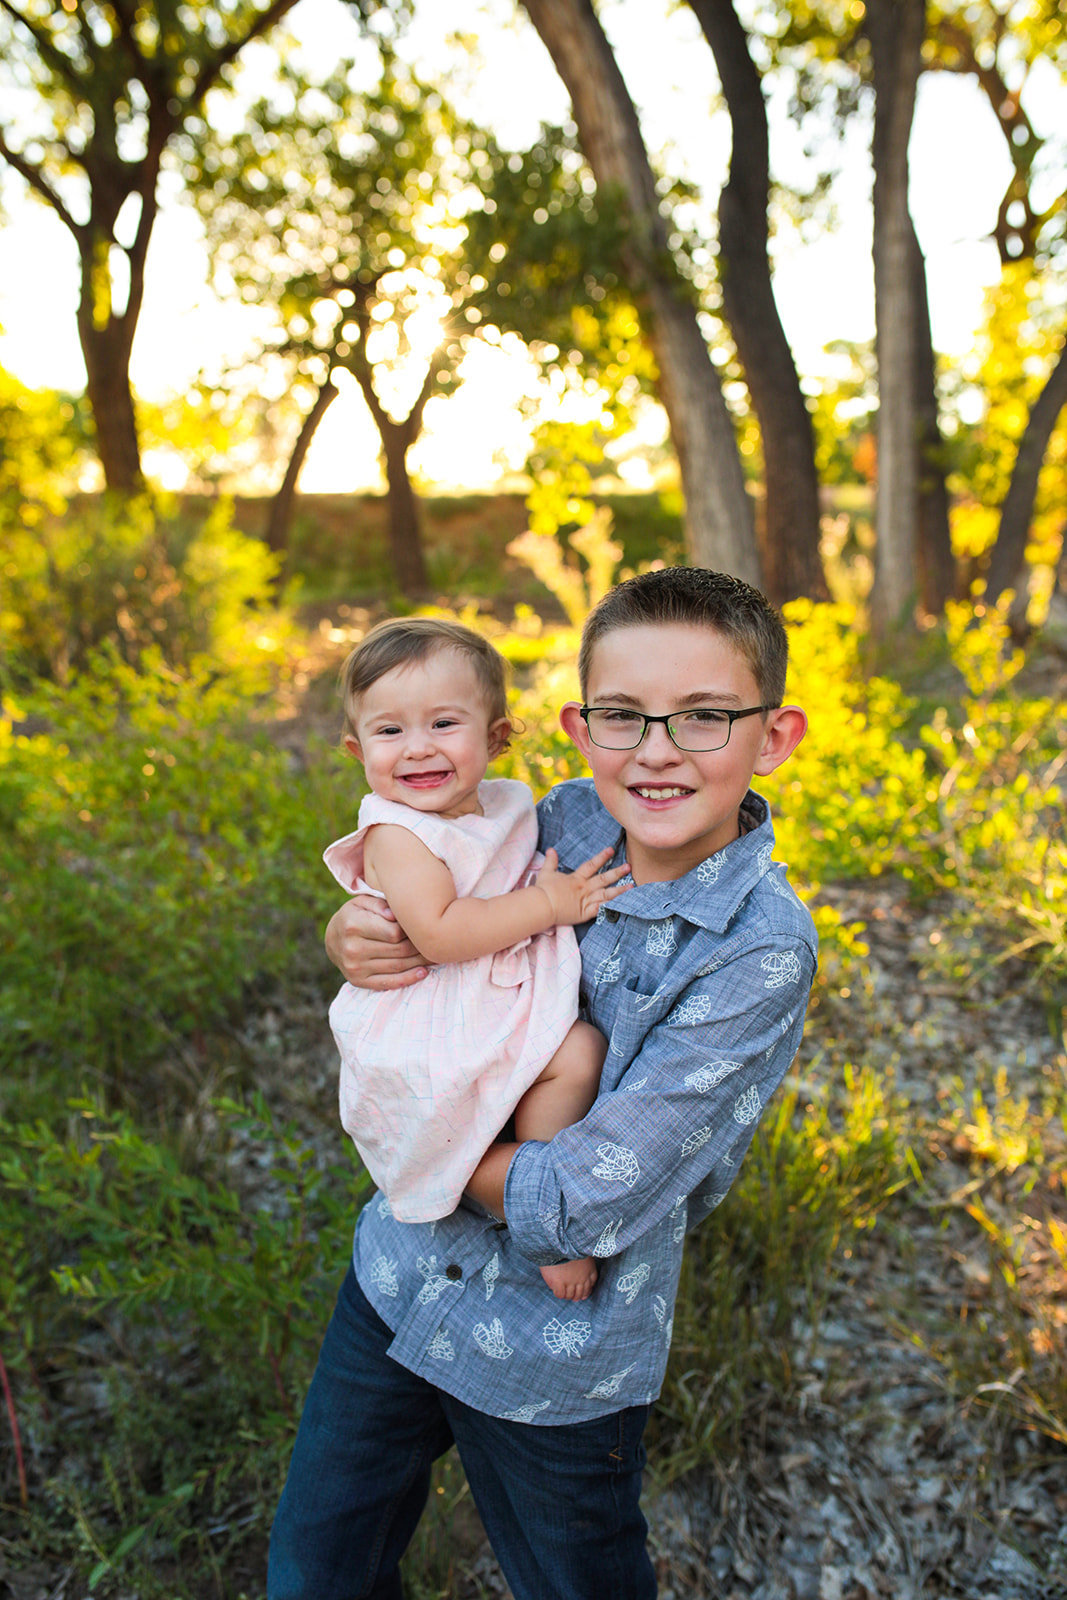 Albuquerque Family Photographer_Bosque_www.tylerbrooke.com_Kate Kauffman_004